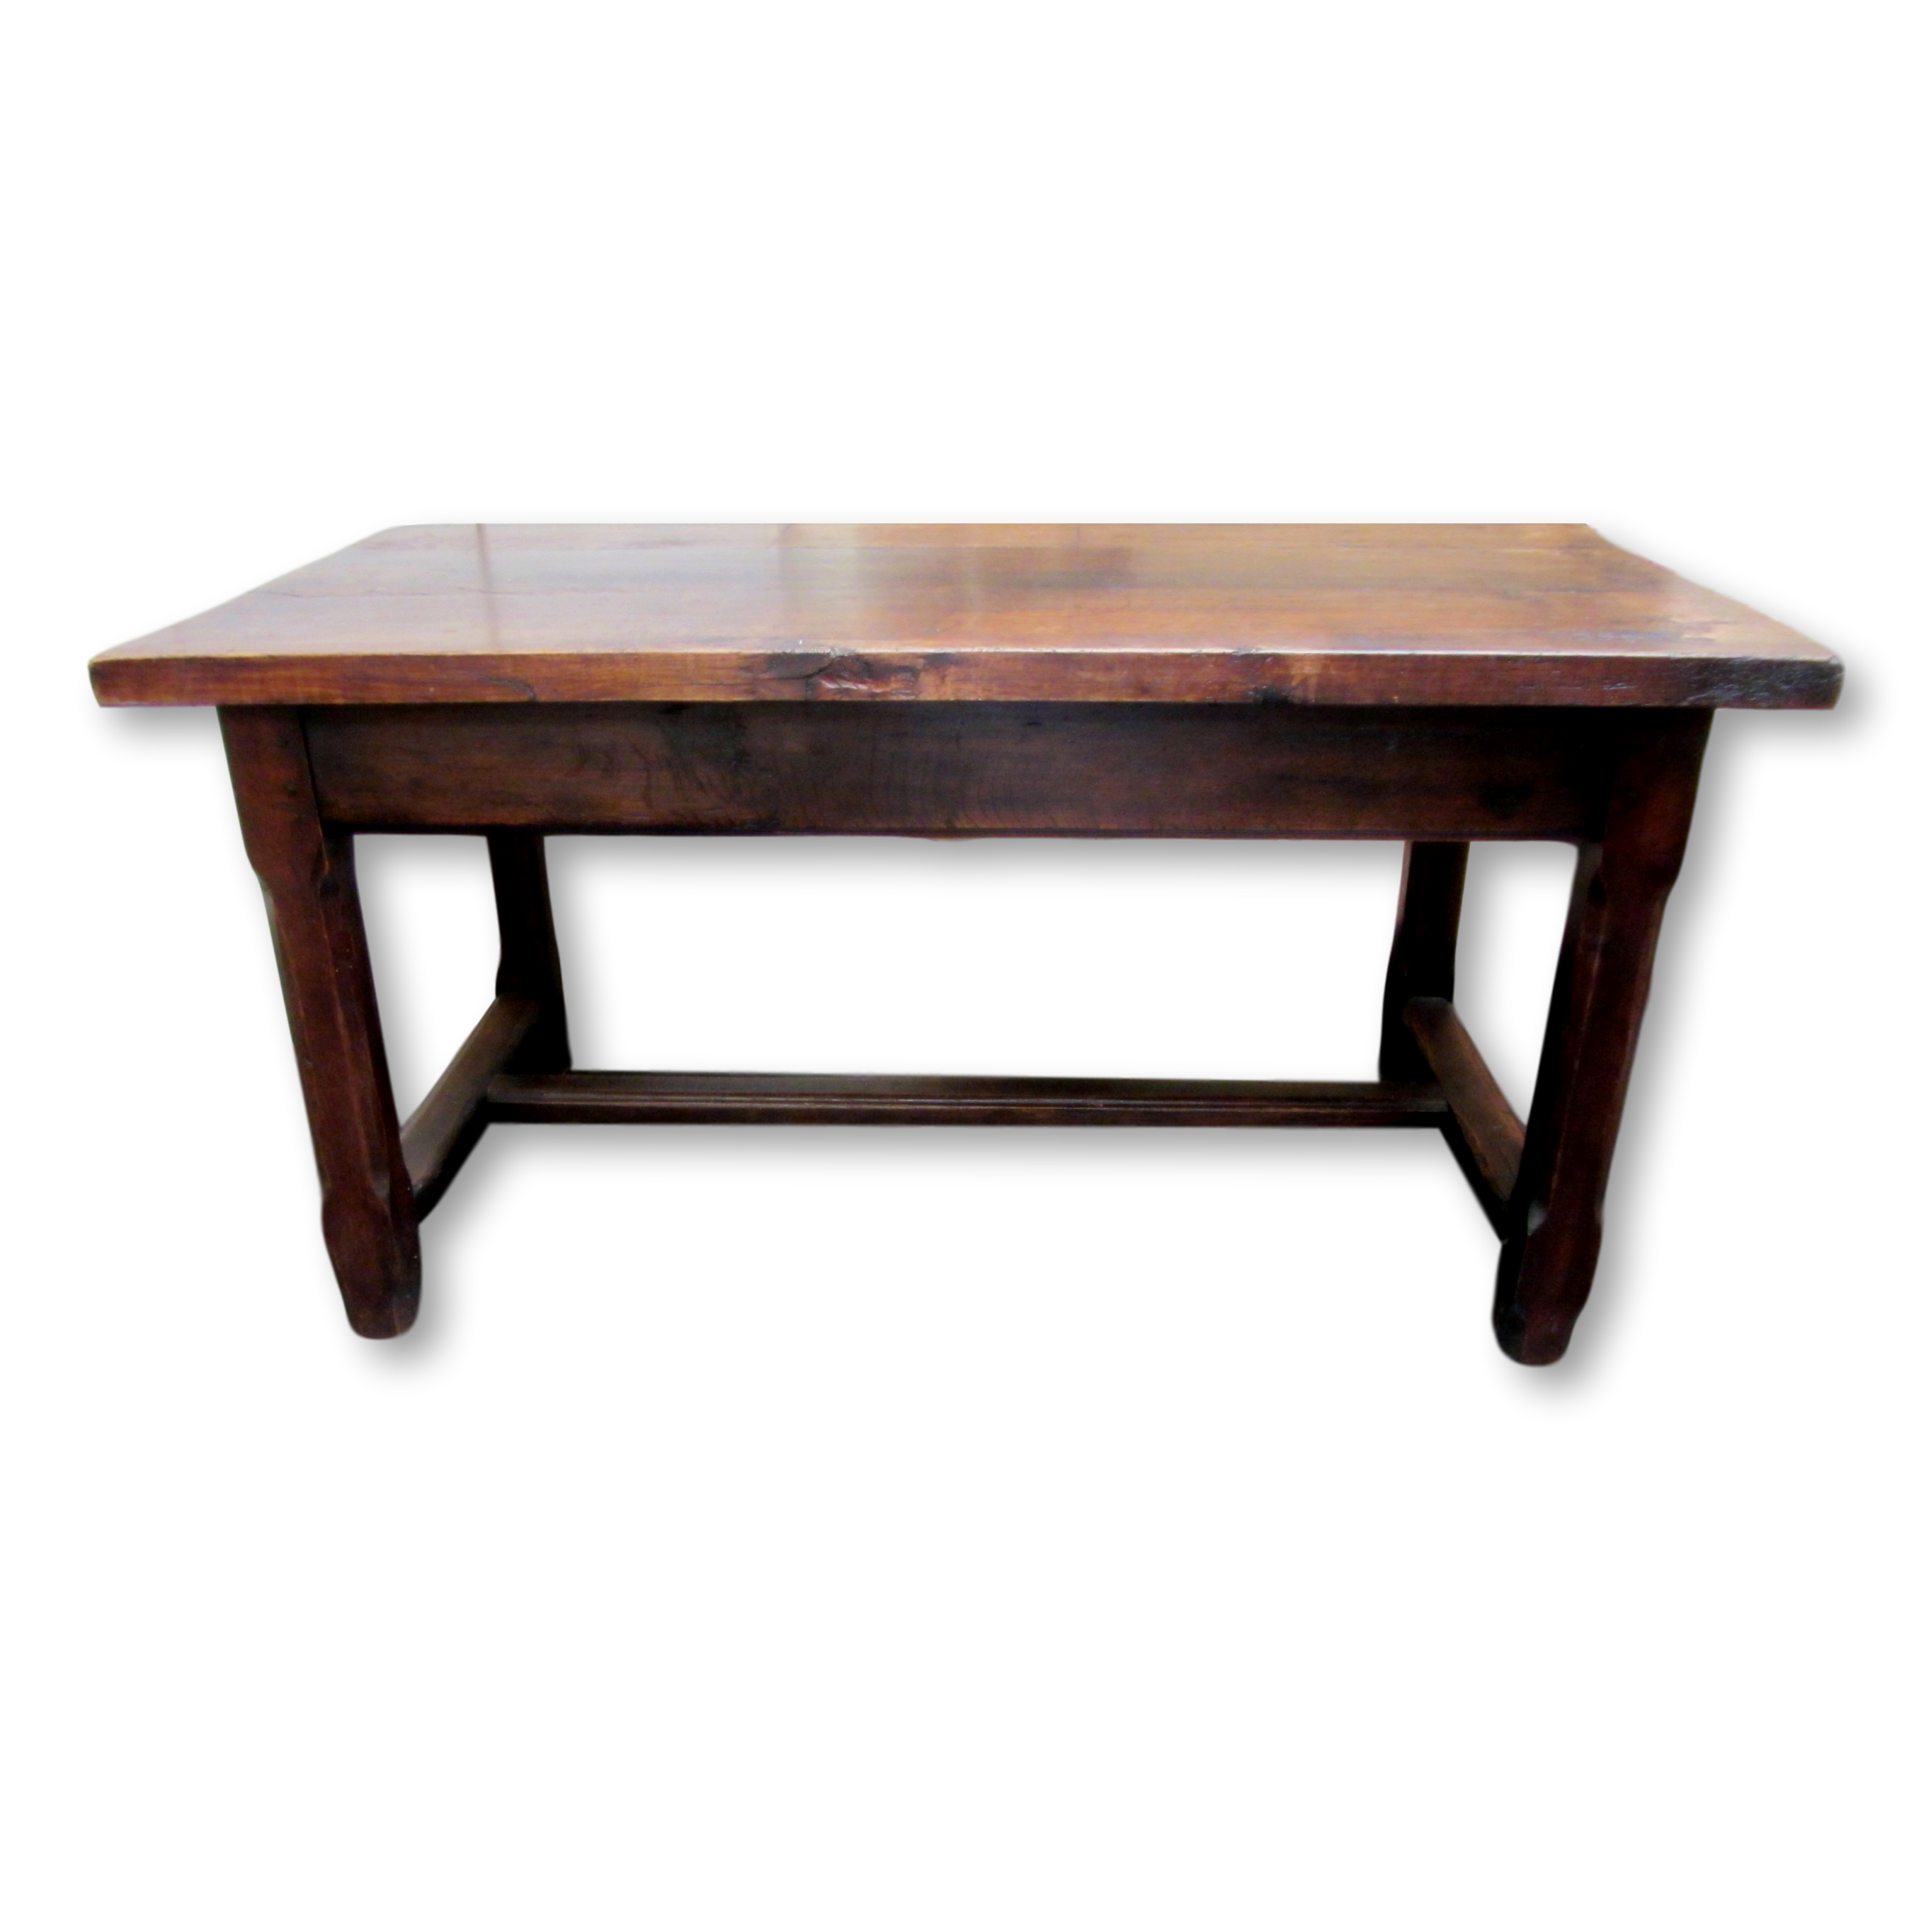 Antique Rustic French Chestnut Writing Table Chairish : antique rustic french chestnut writing table 3003aspectfitampwidth640ampheight640 from www.chairish.com size 640 x 640 jpeg 21kB